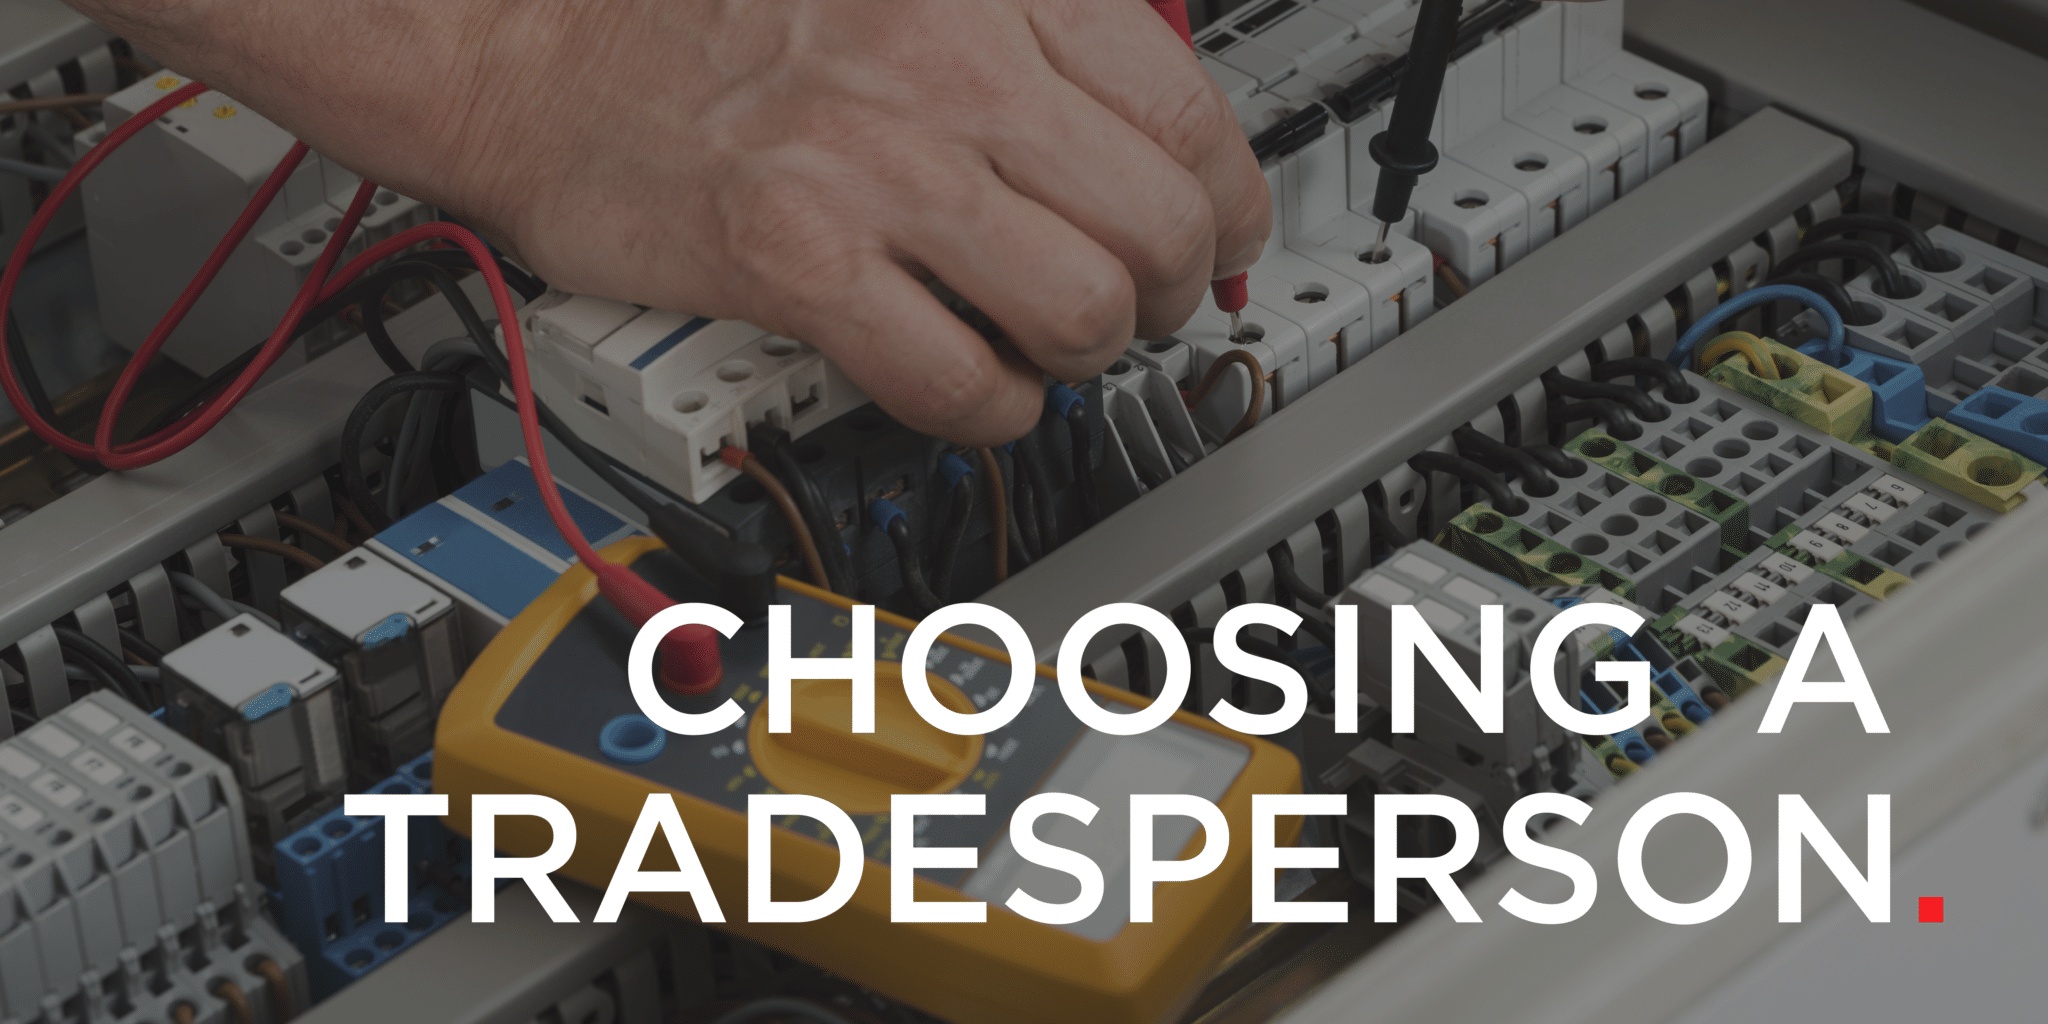 When choosing a tradesperson, how do you know where to start?